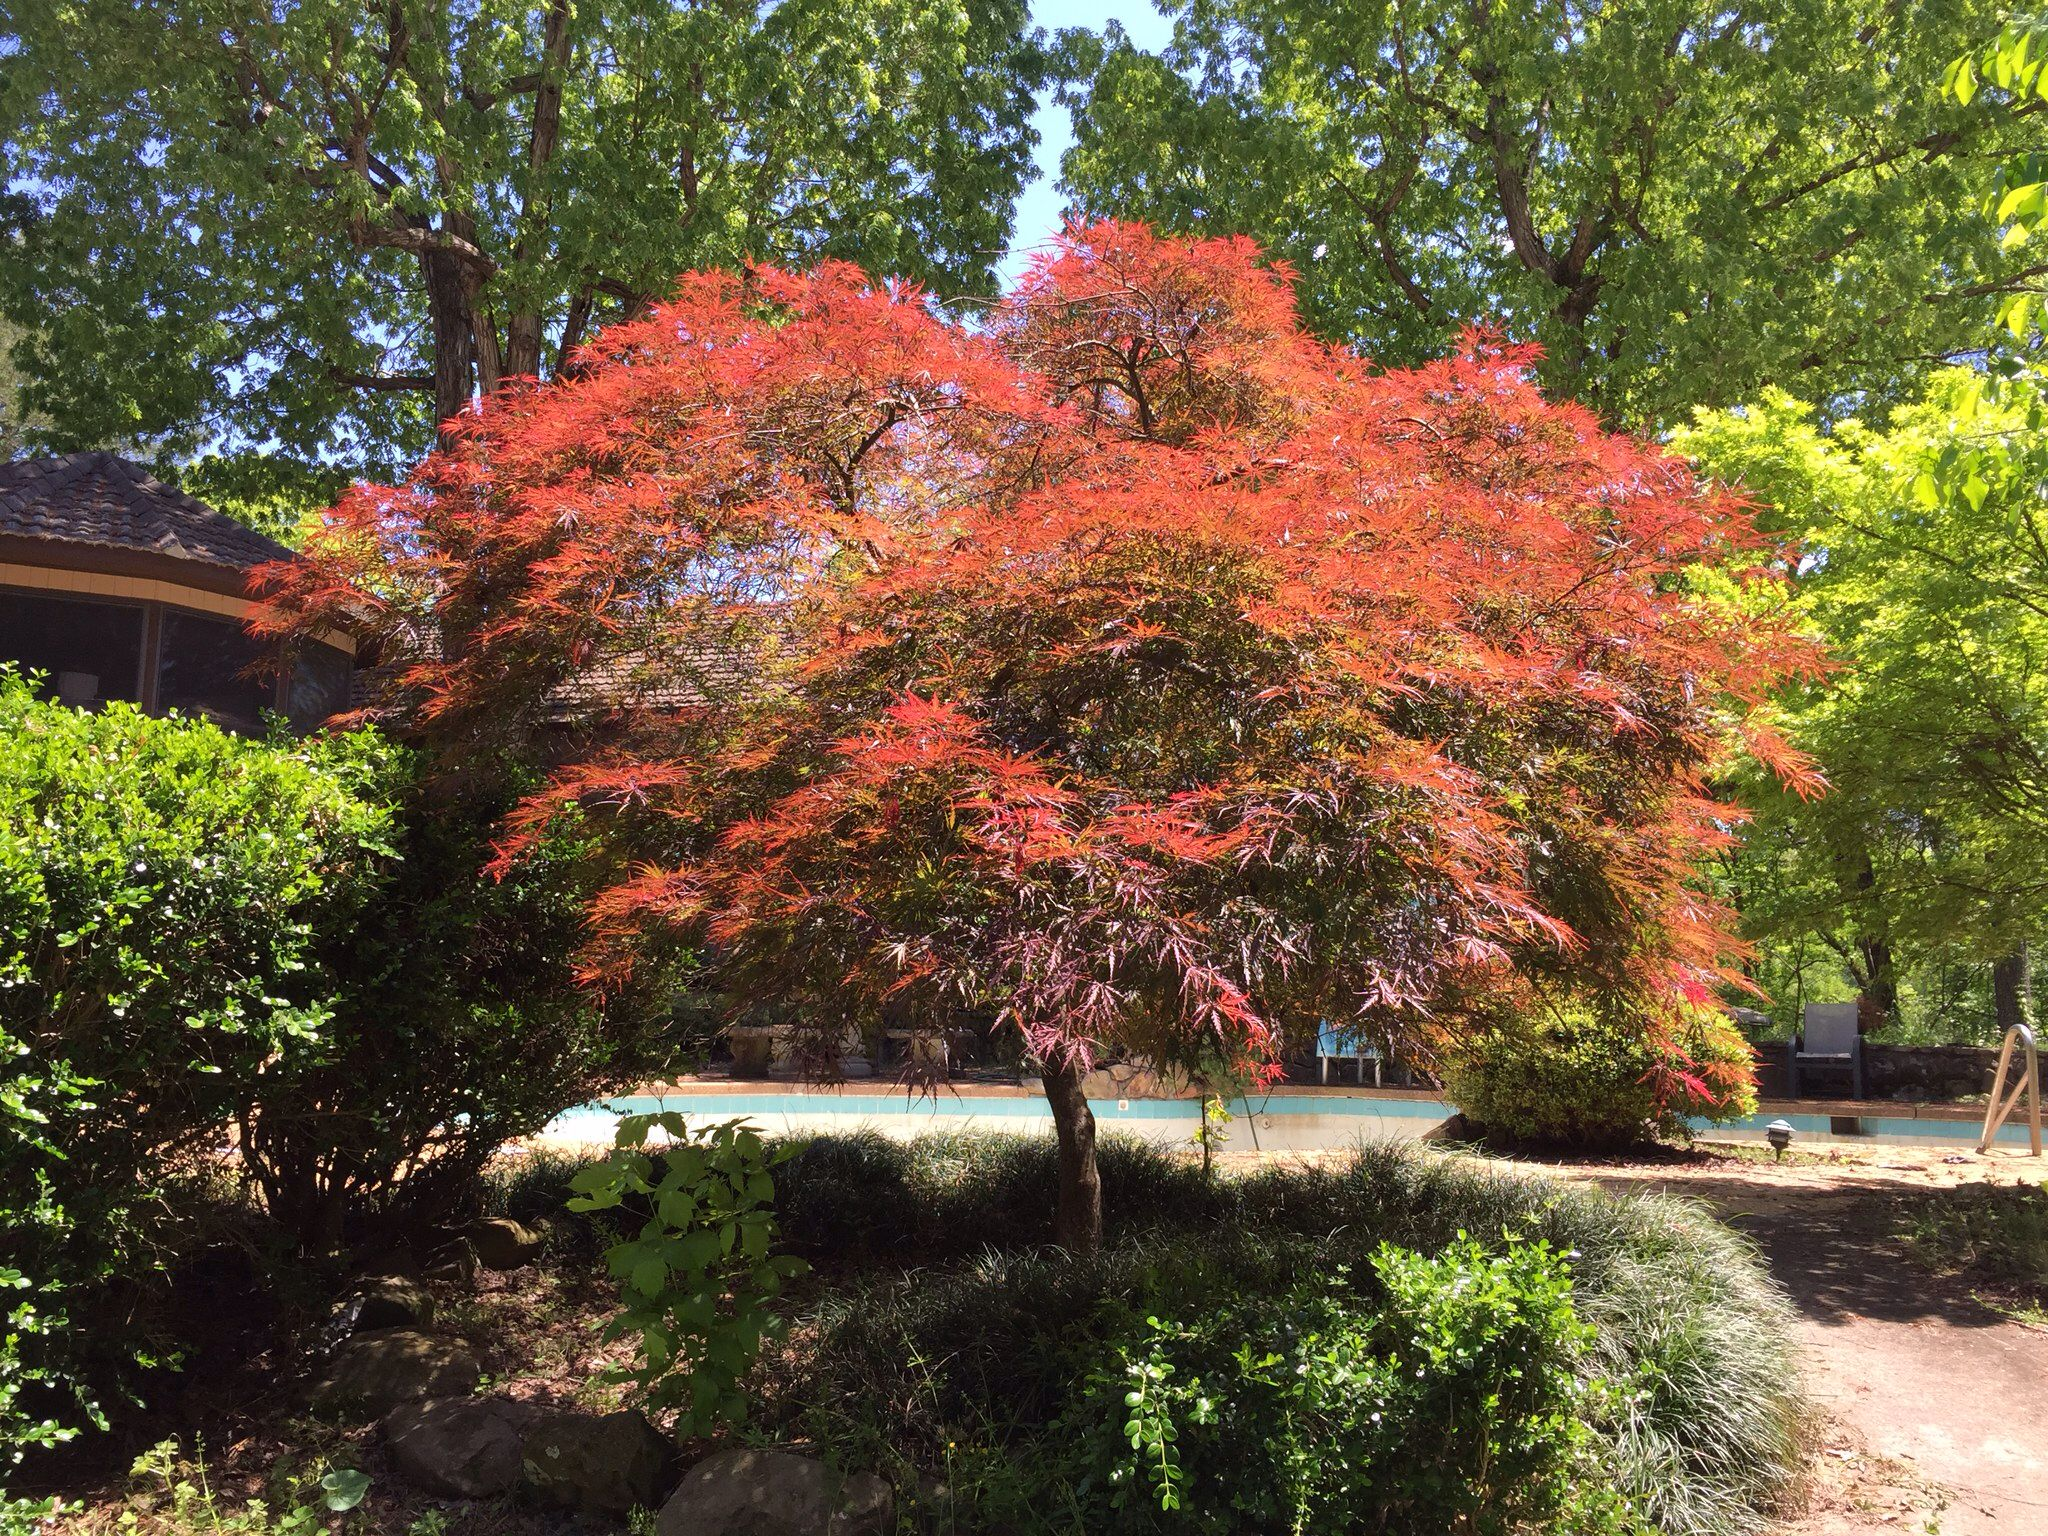 Now I get why the Japanese Maple is such a fancy tree. This think has like 10 different shades of red and green. I love it :)